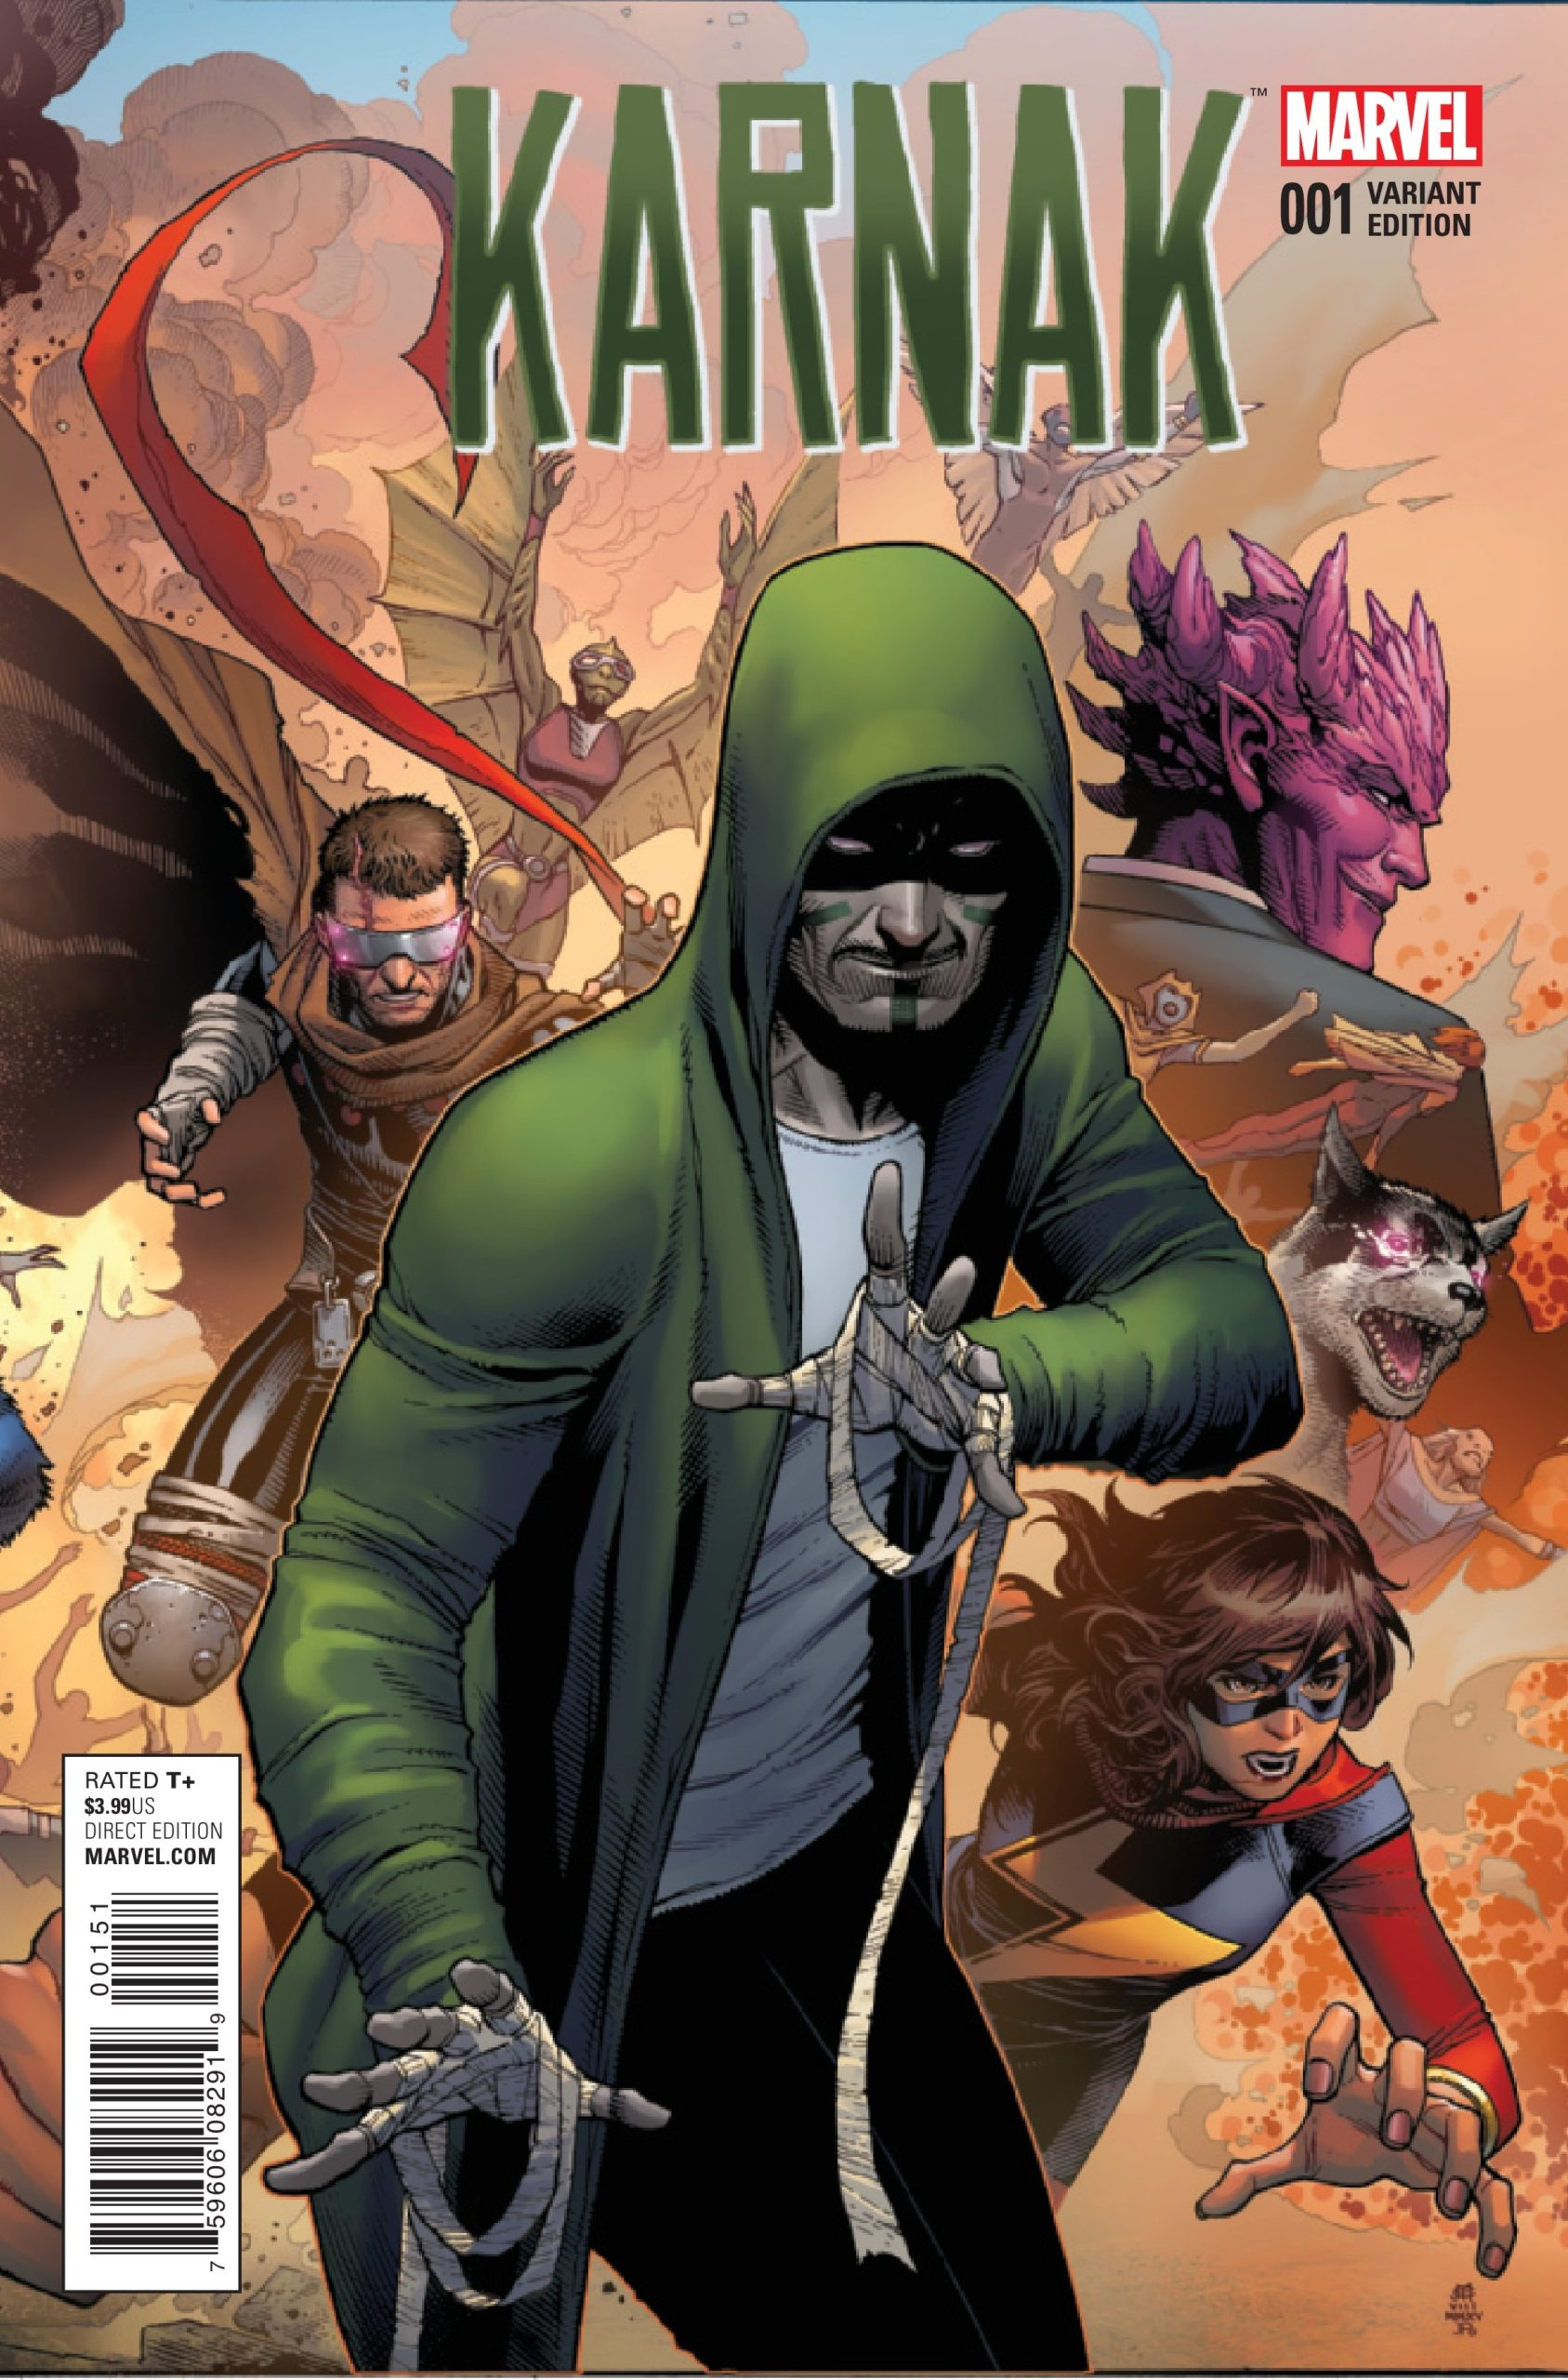 Couverture alternative de Karnak 001